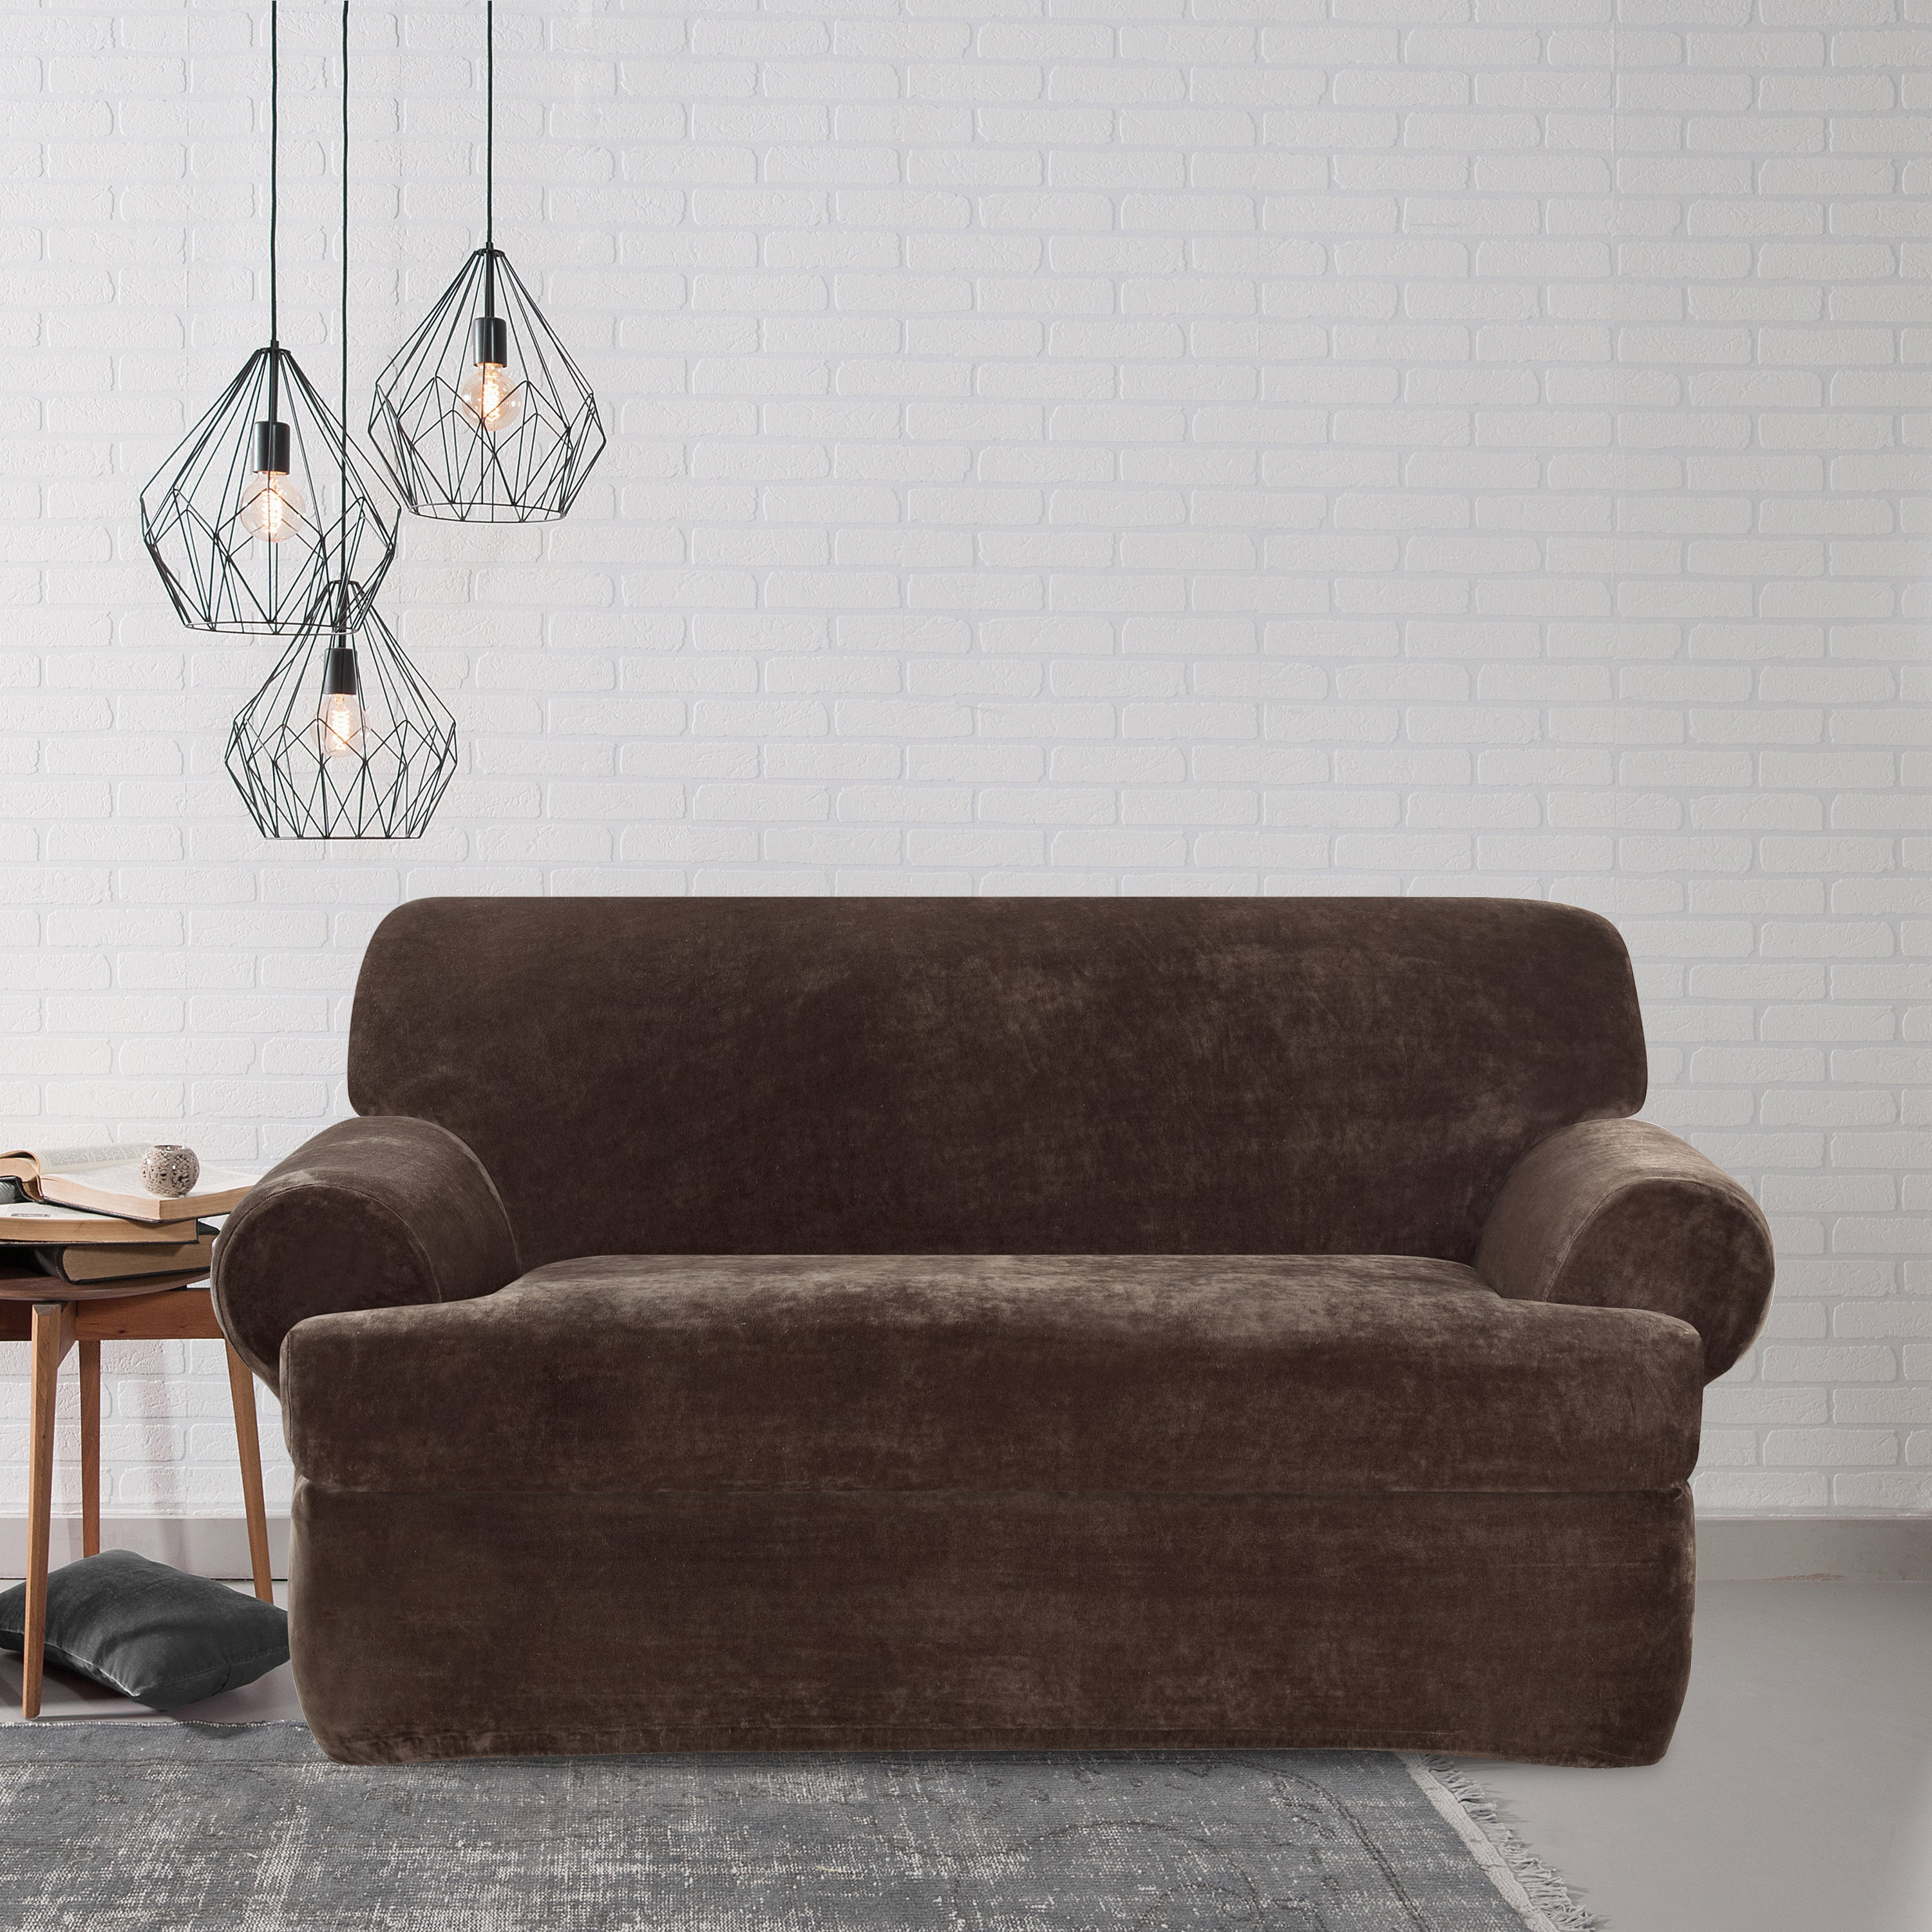 Magnificent Sure Fit Stretch Plush Chocolate T Cushion Loveseat Slipcover Short Links Chair Design For Home Short Linksinfo